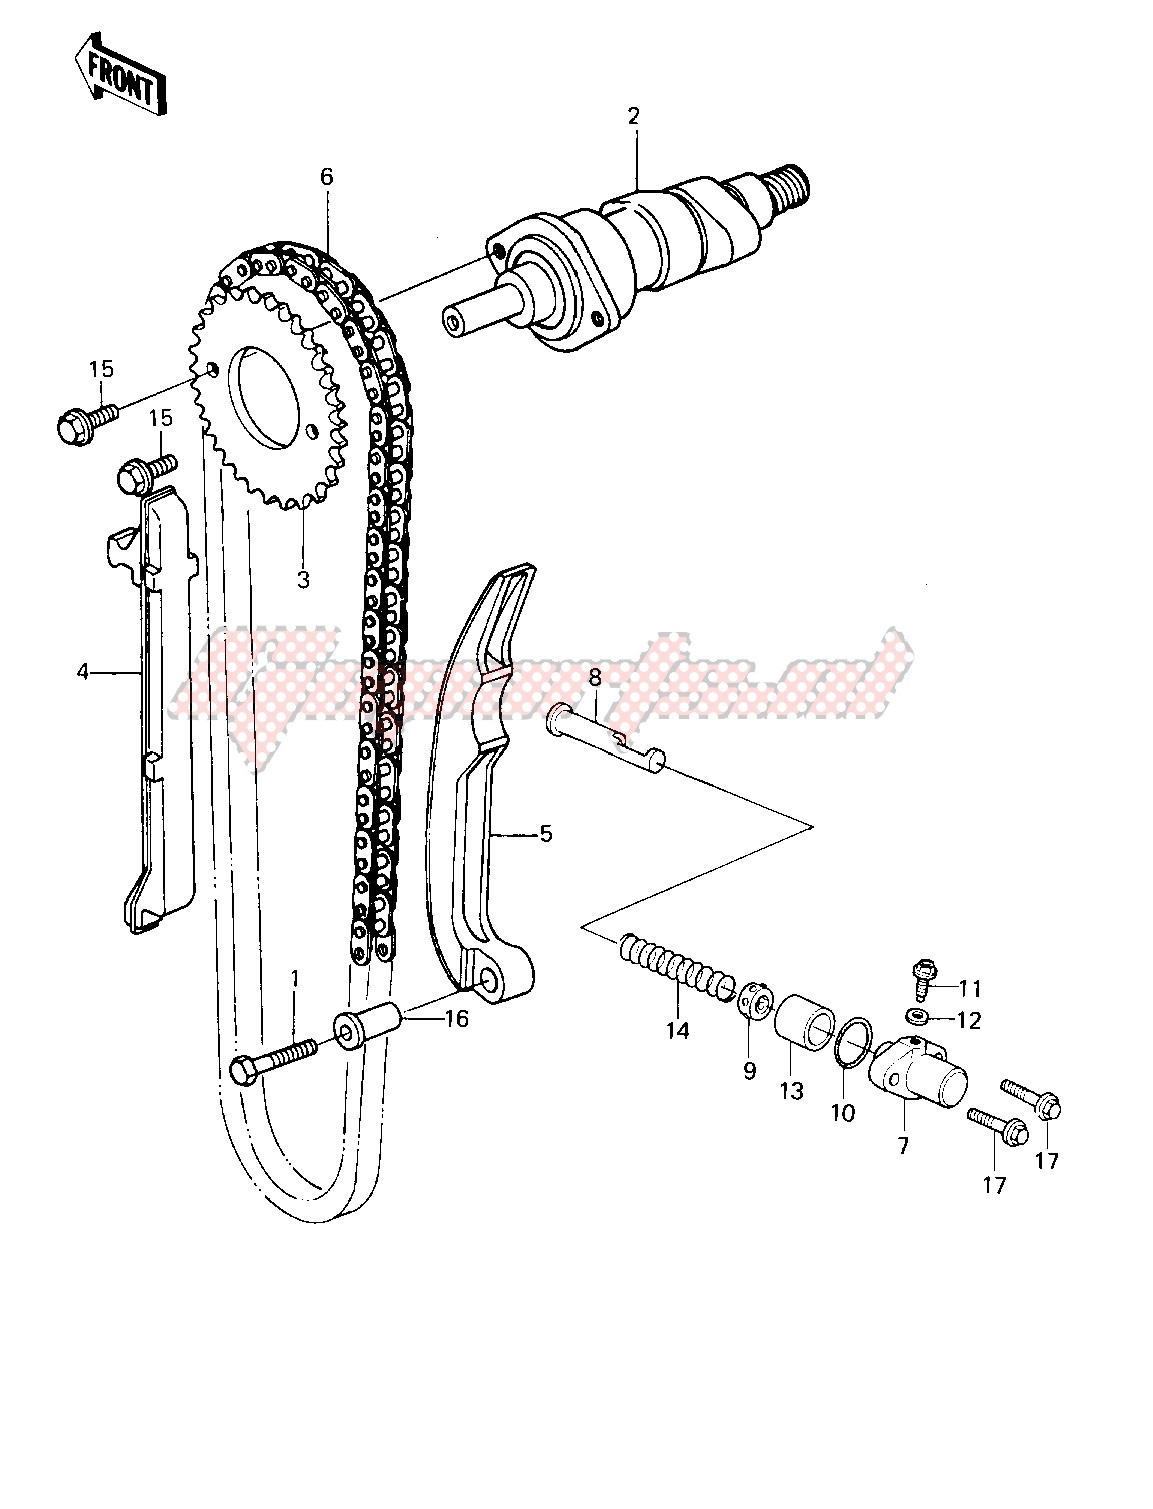 CAMSHAFT_CHAIN_TENSIONER -- 81-82 KLT200-A1_A2_A3- - image